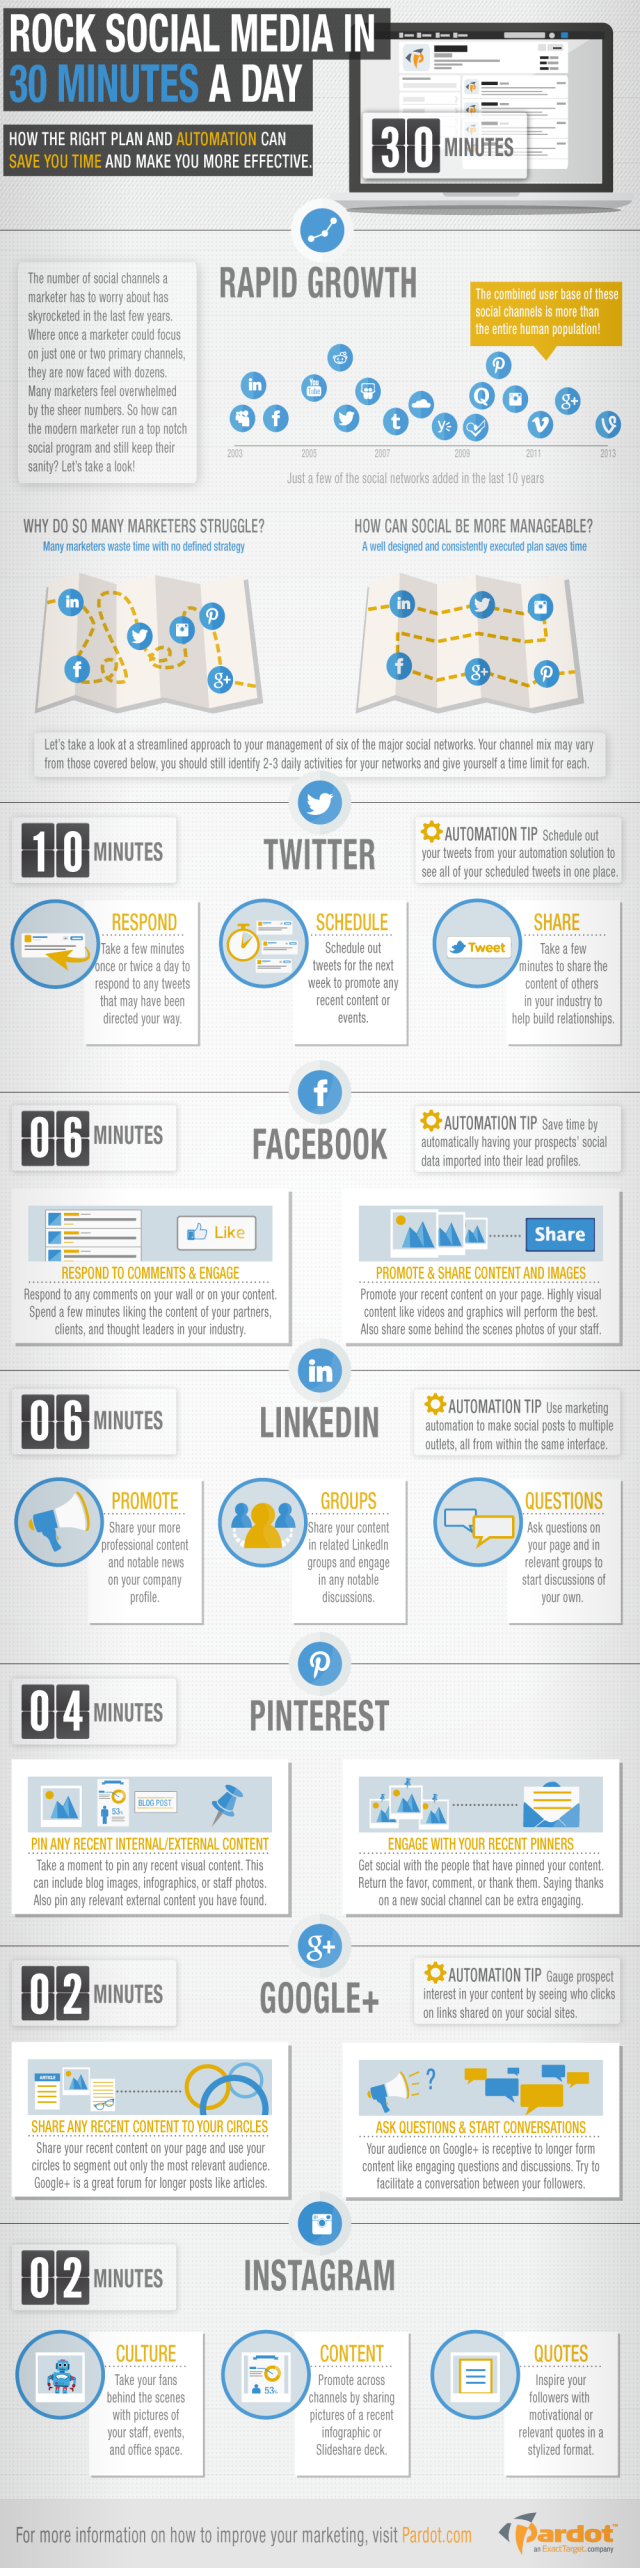 how to use social media just 30 minutes a day